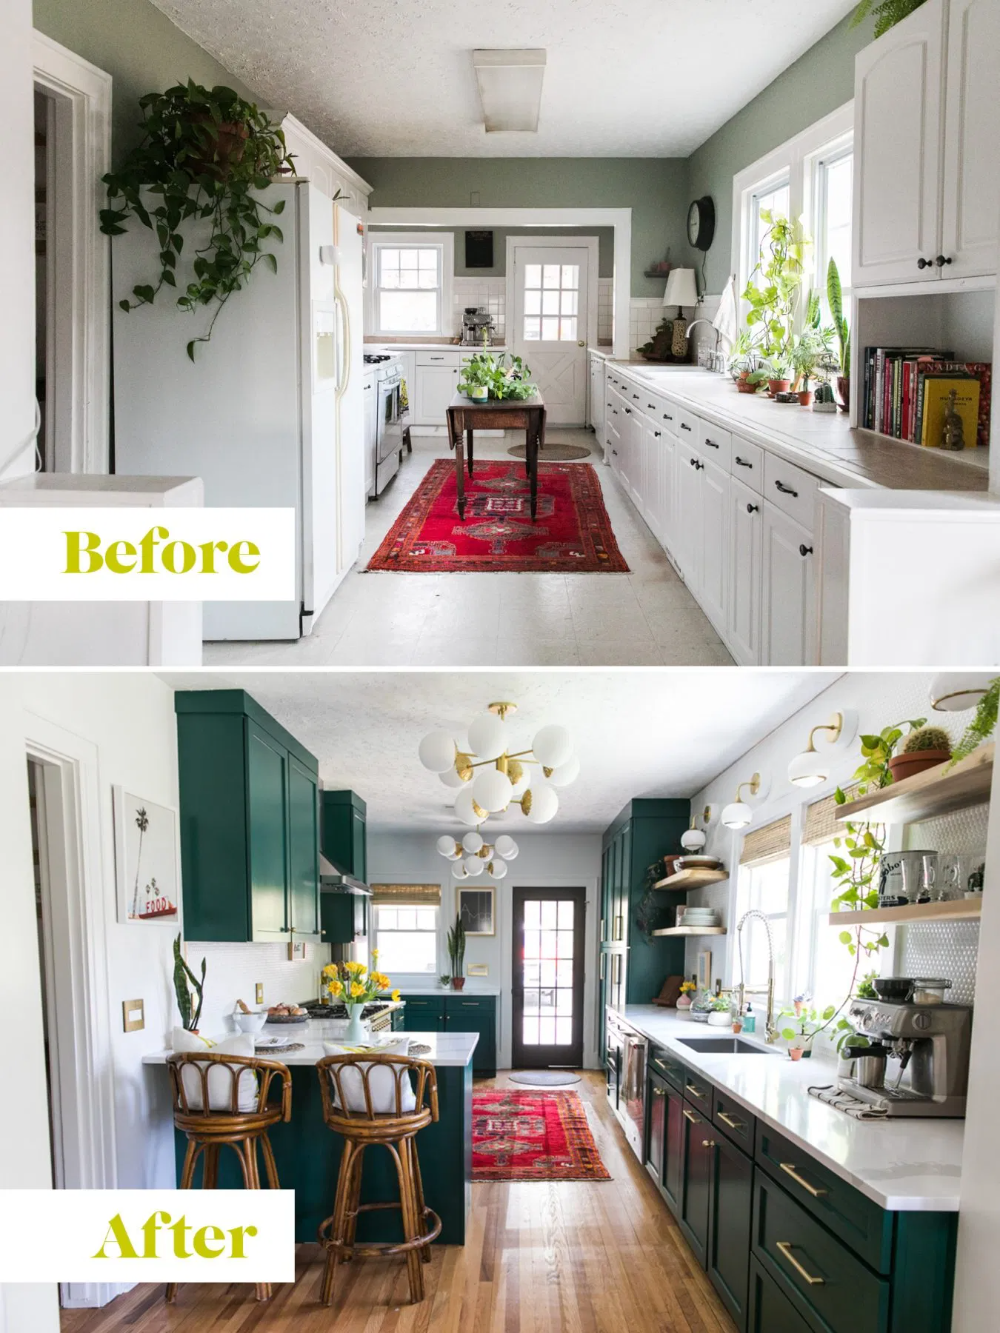 One Room Challenge - Green Kitchen Glamazon - The Reveal